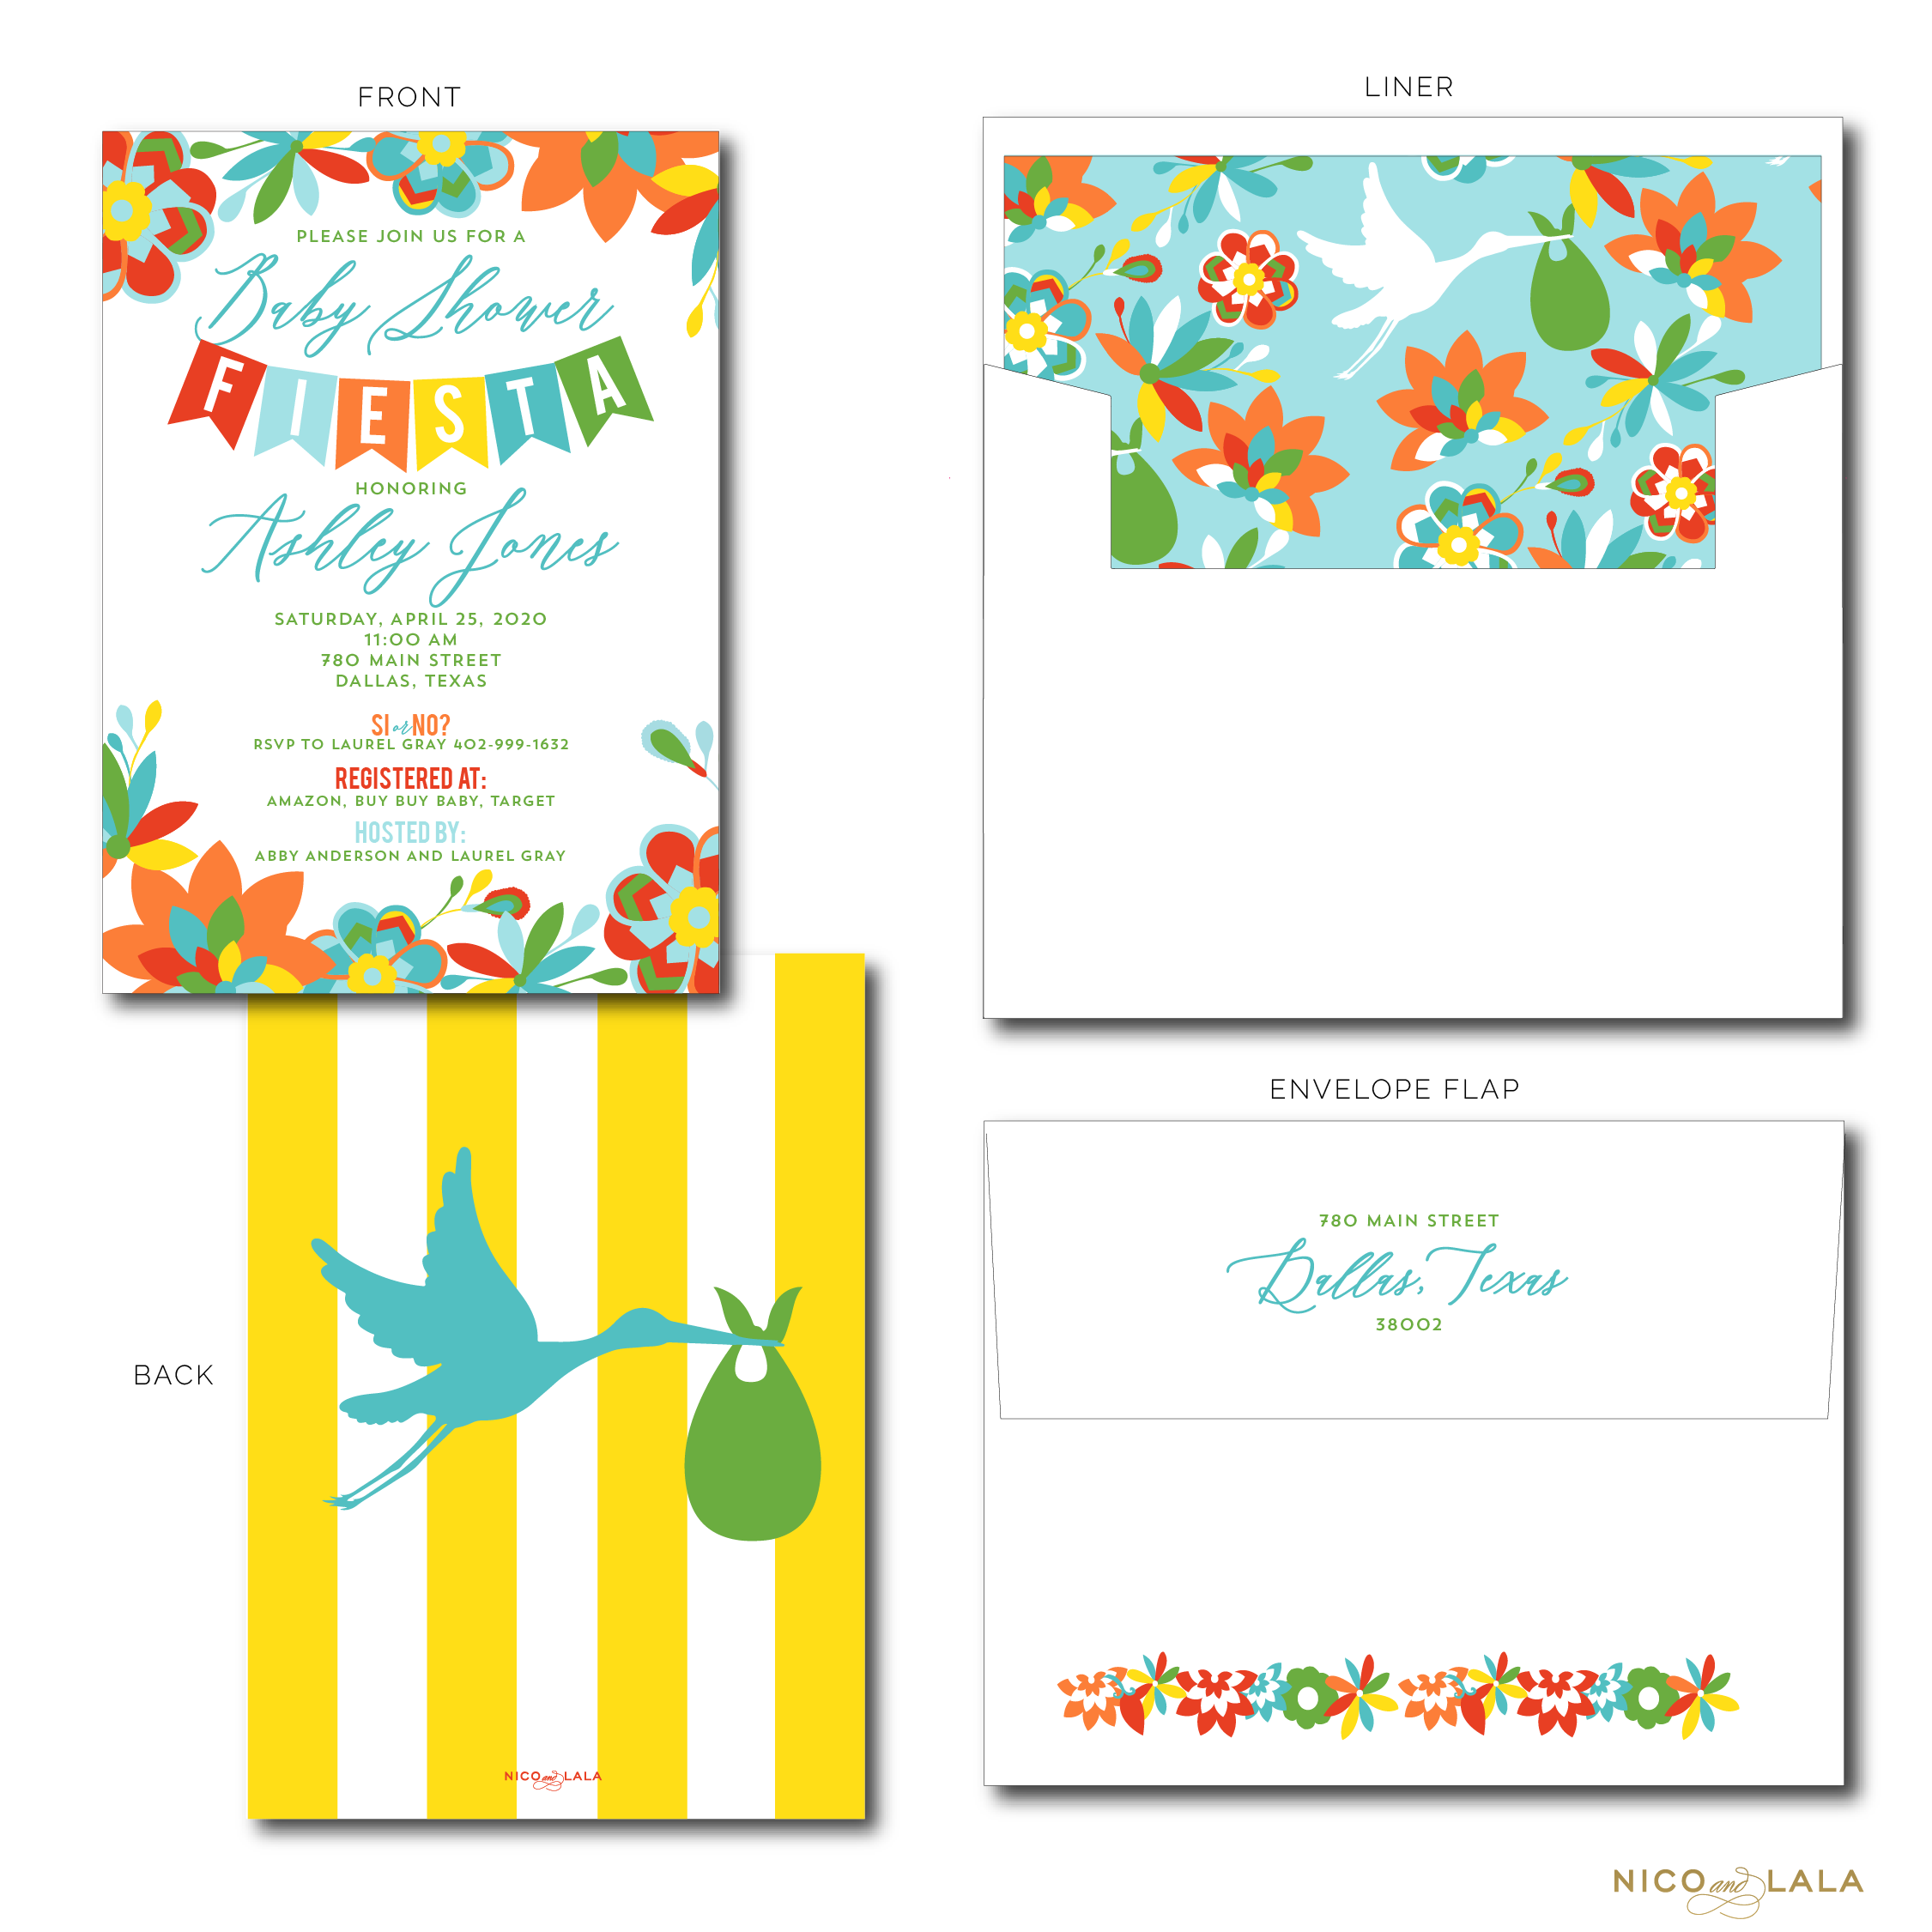 FIESTA BABY SHOWER INVITATIONS